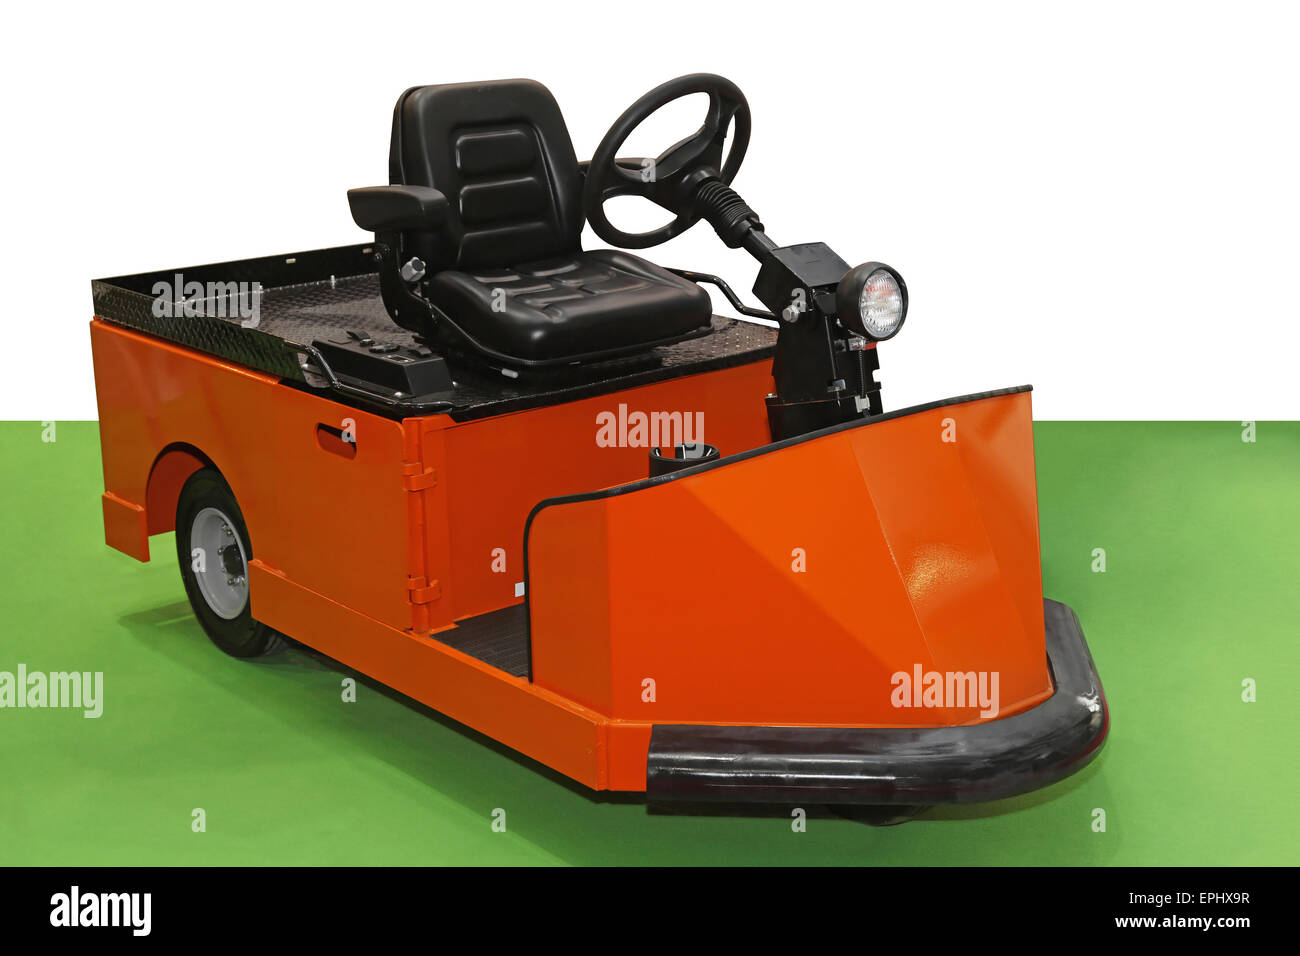 Jumbo Tractor Tow : Tow tractor stock photos images alamy